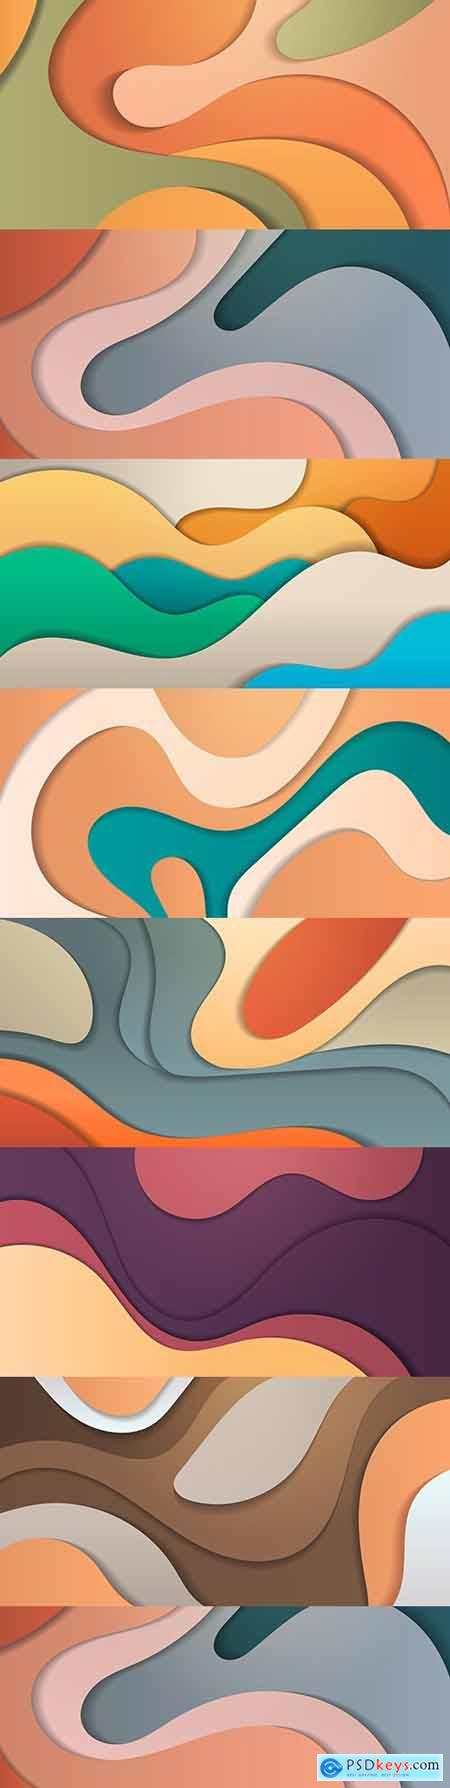 Paper cut composition abstract background with colorful waves